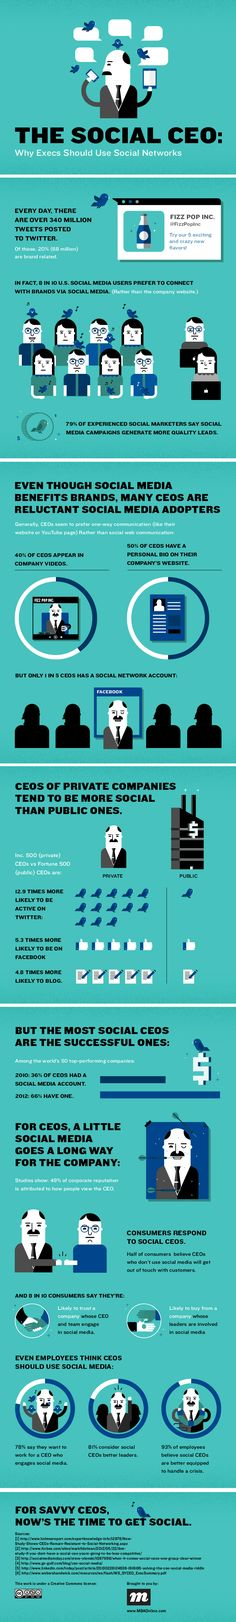 Only 1 in 5 CEO's has a social network account. Not enough!